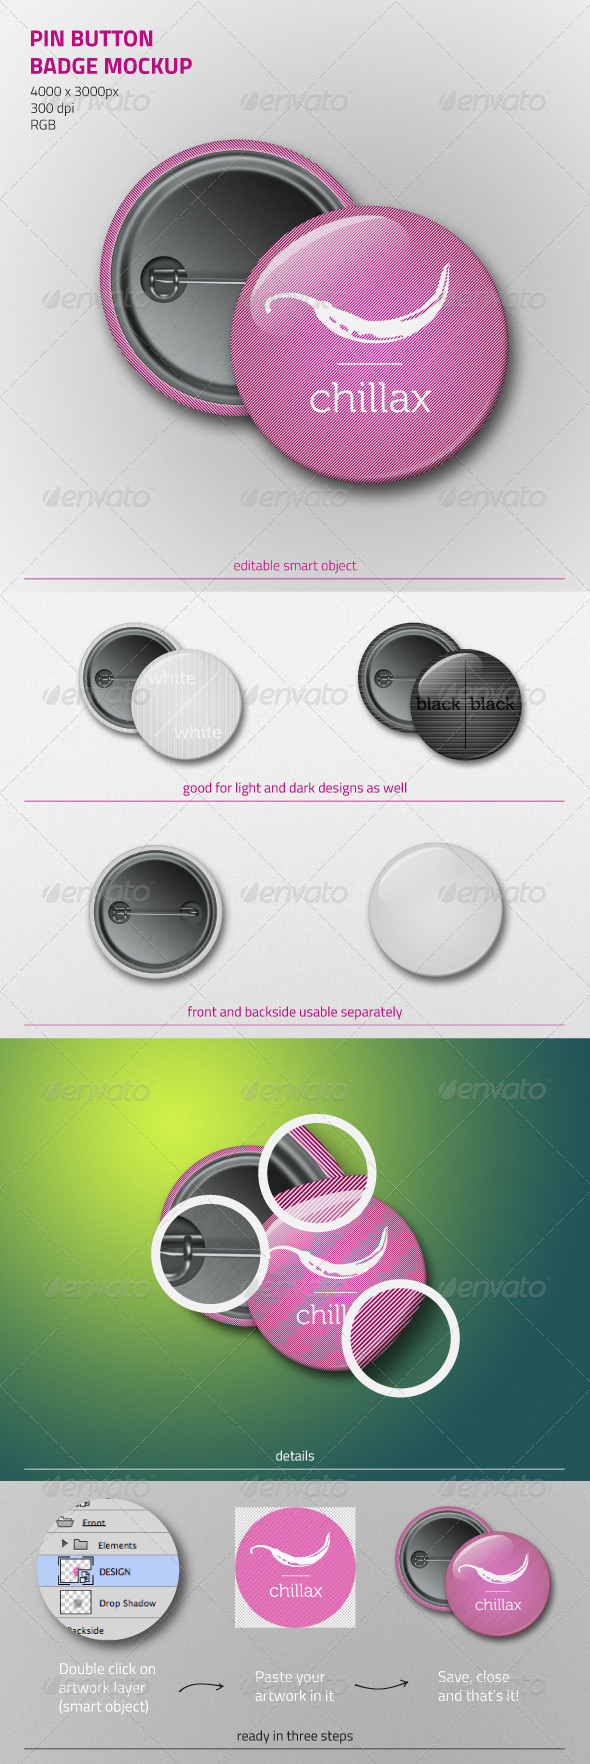 Pin Button Badge Mockup - Miscellaneous Product Mock-Ups